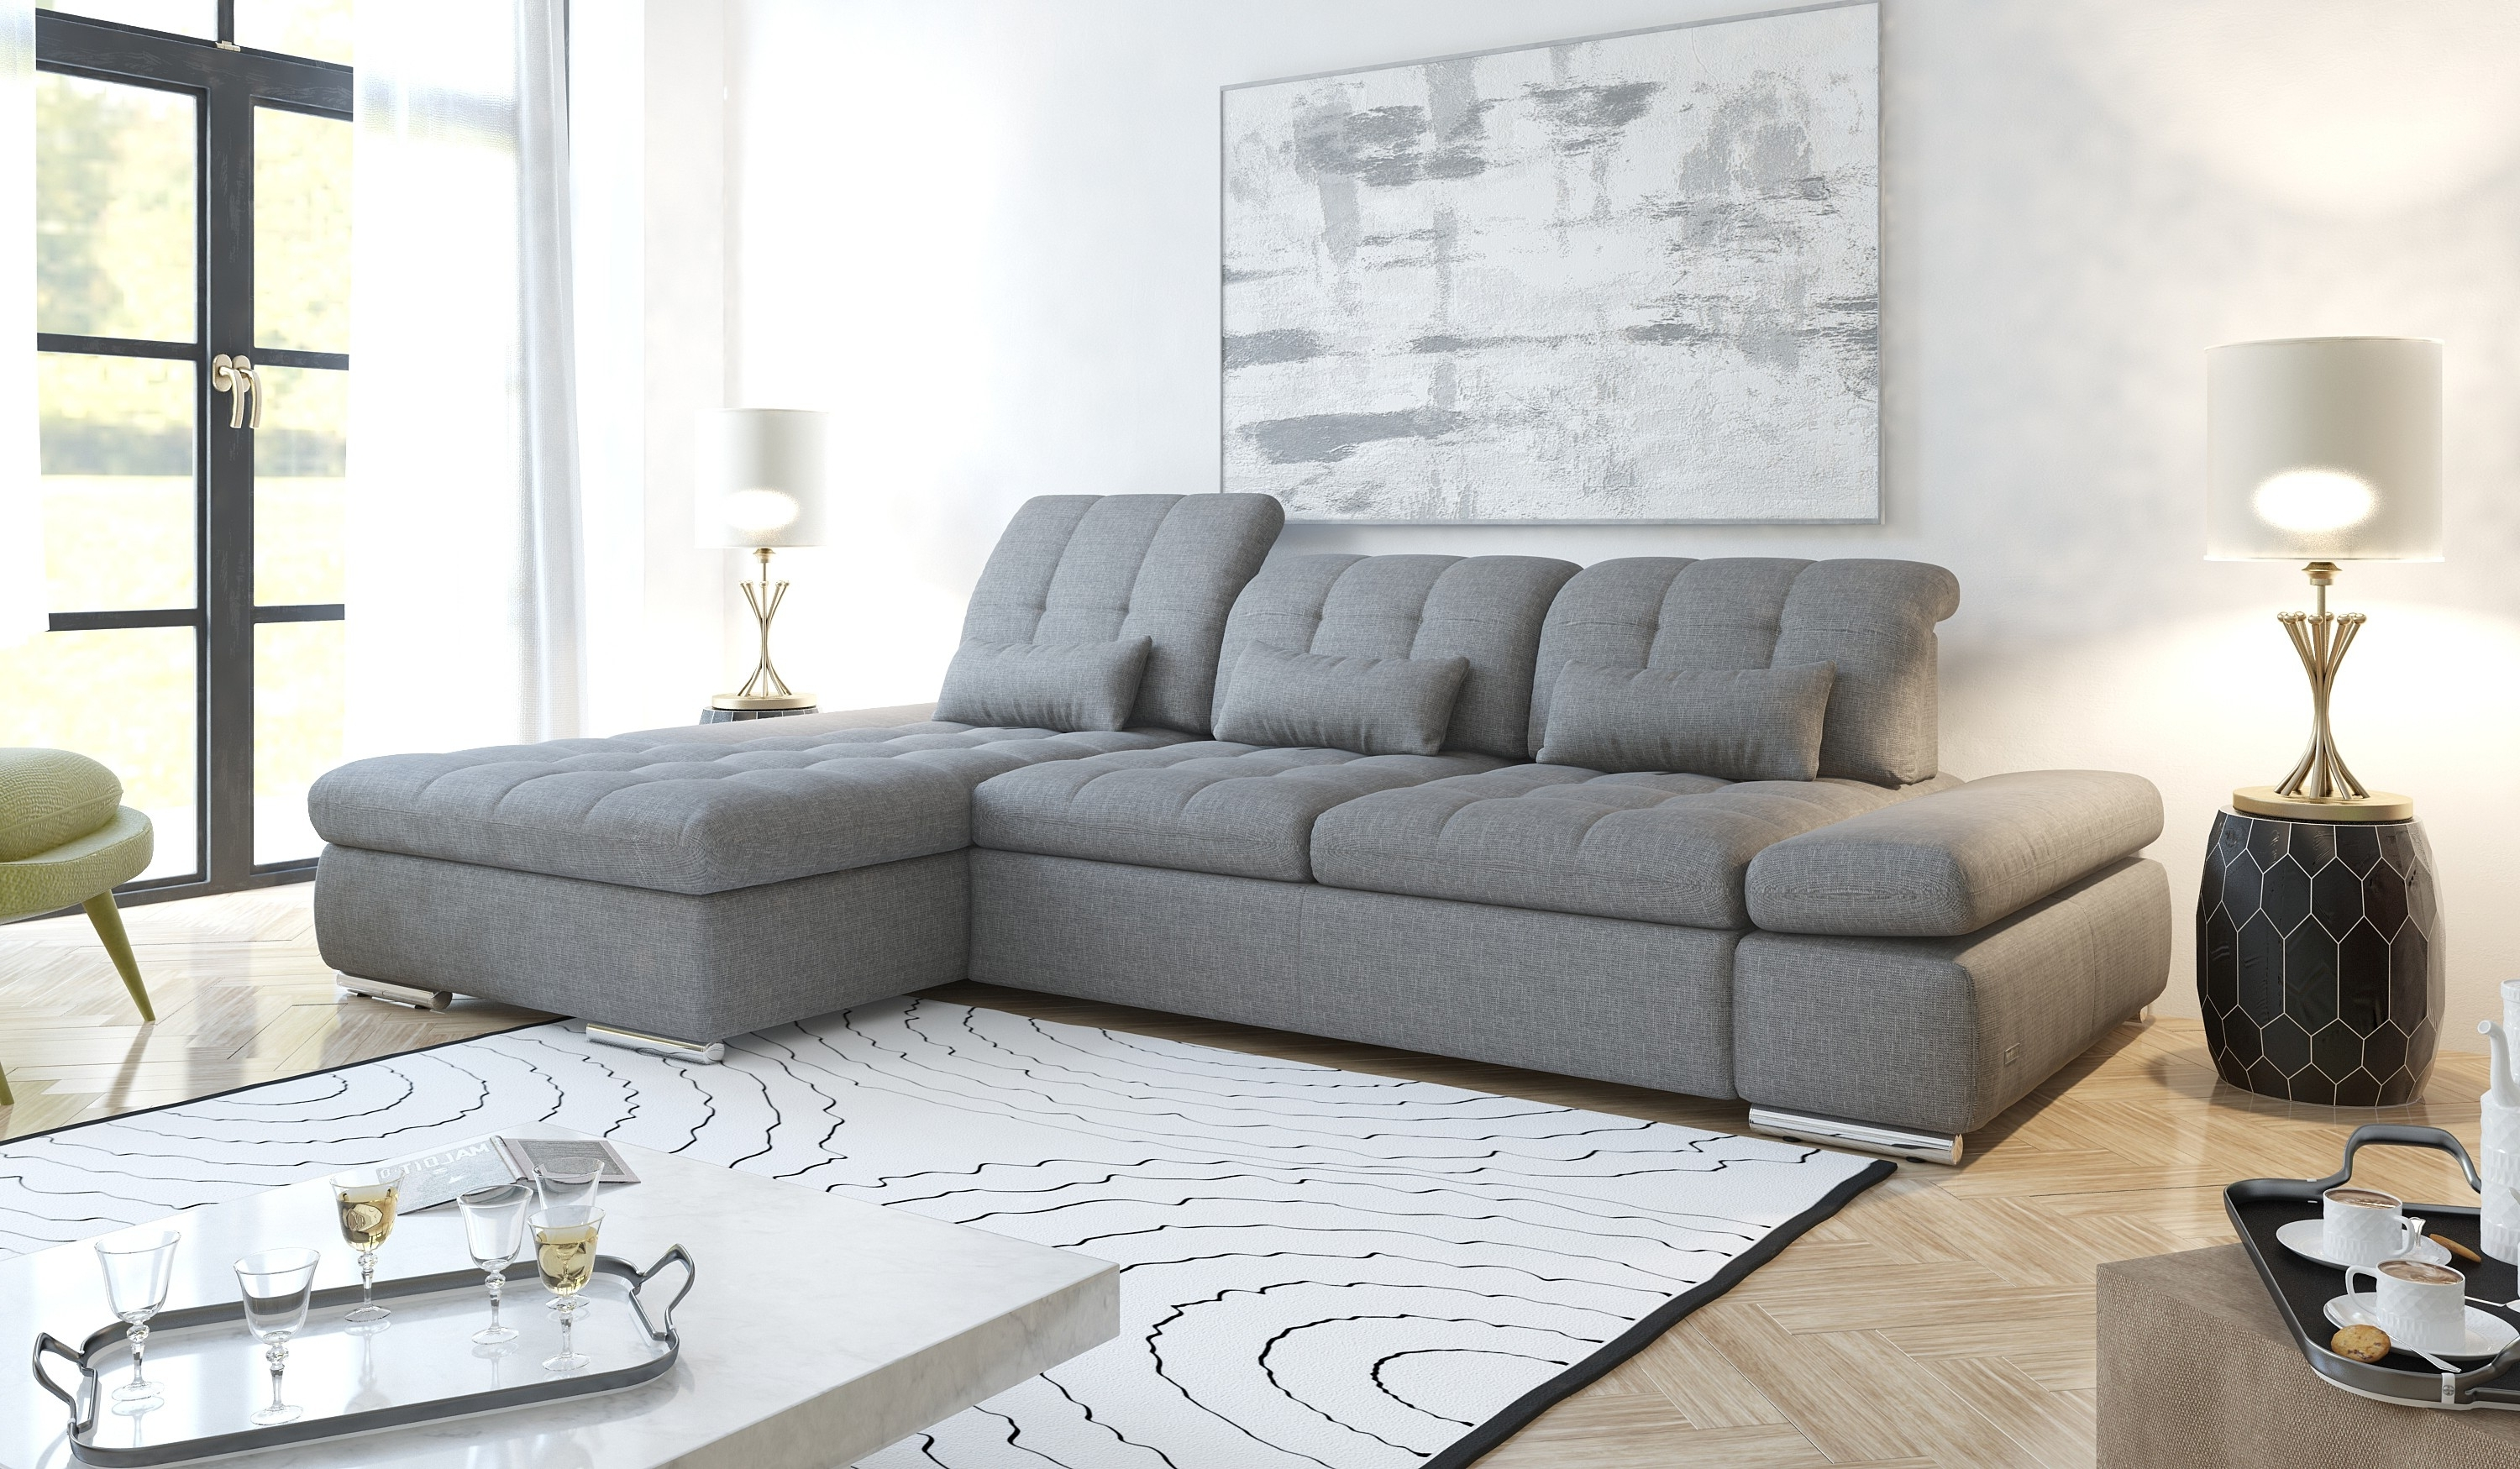 Widely Used Trinidad And Tobago Sectional Sofas In Alpine Sectional Sofa (View 3 of 15)